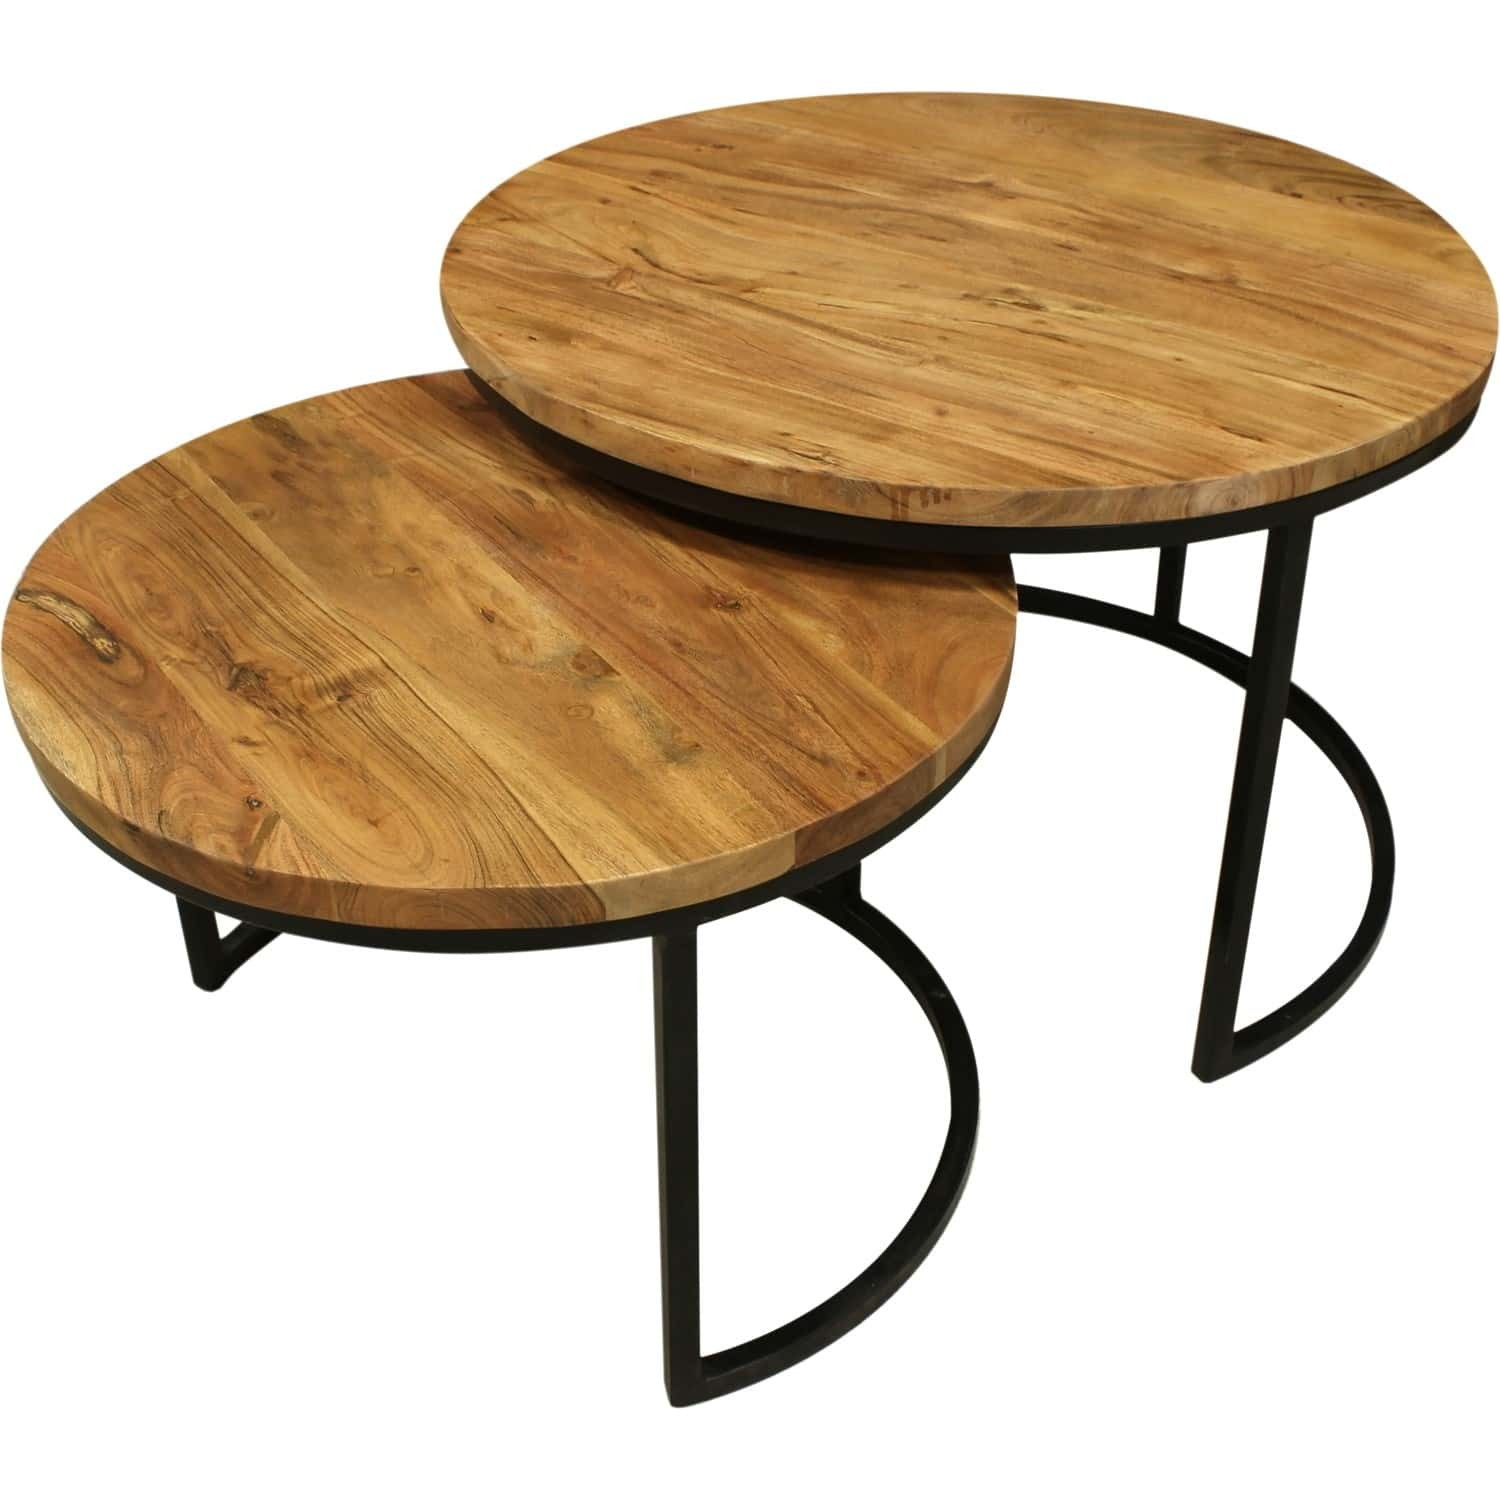 Tables basses gigognes bois et metal for Table basse scandinave bois et metal